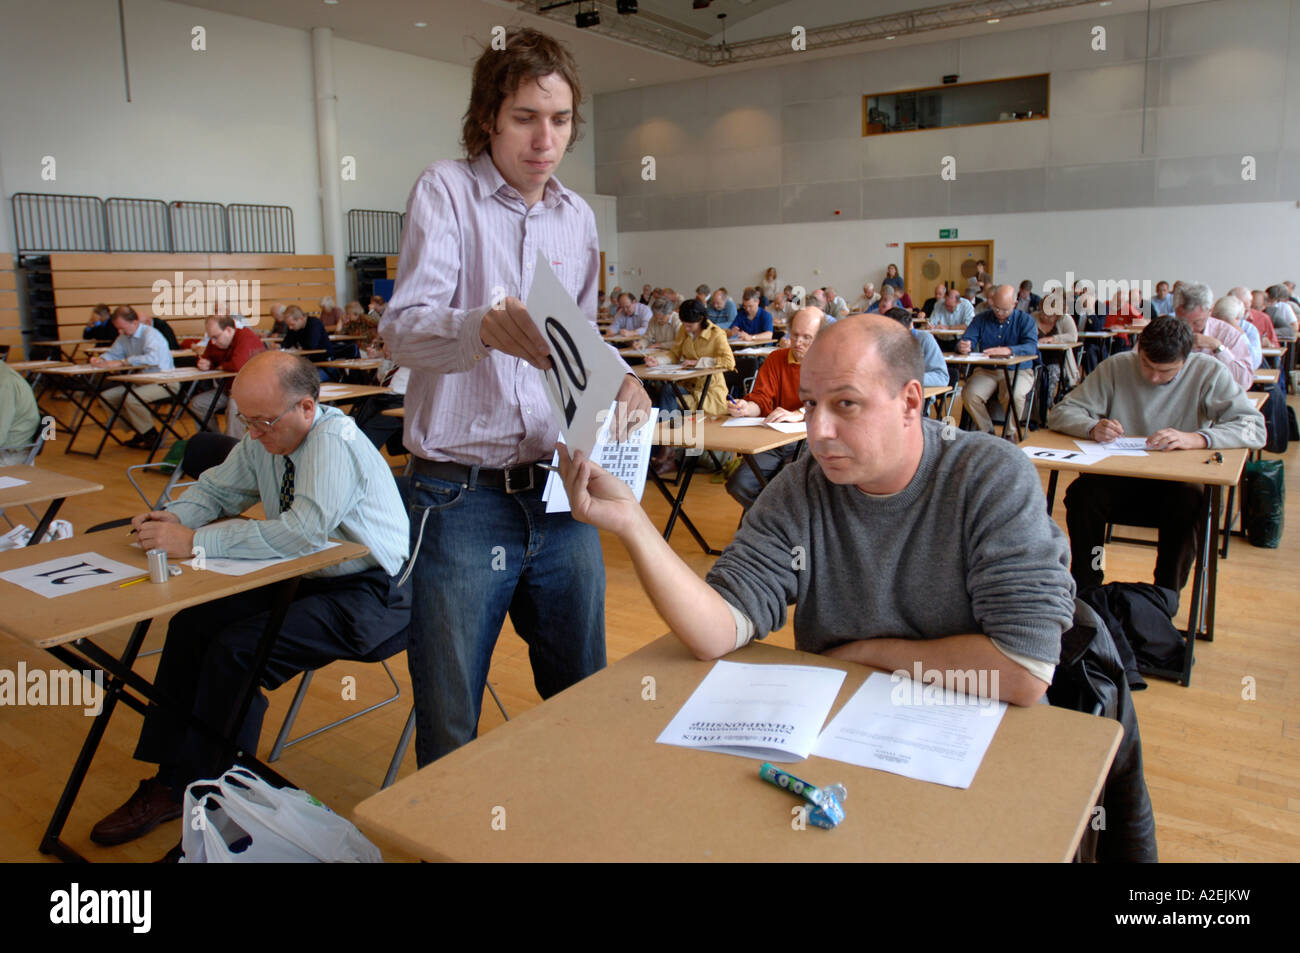 A CONTESTANT HANDS IN HIS FINISHED ENTRY AT THE TIMES NATIONAL CROSSWORD COMPETITION CUP DURING THE CHAMPIONSHIPS Stock Photo